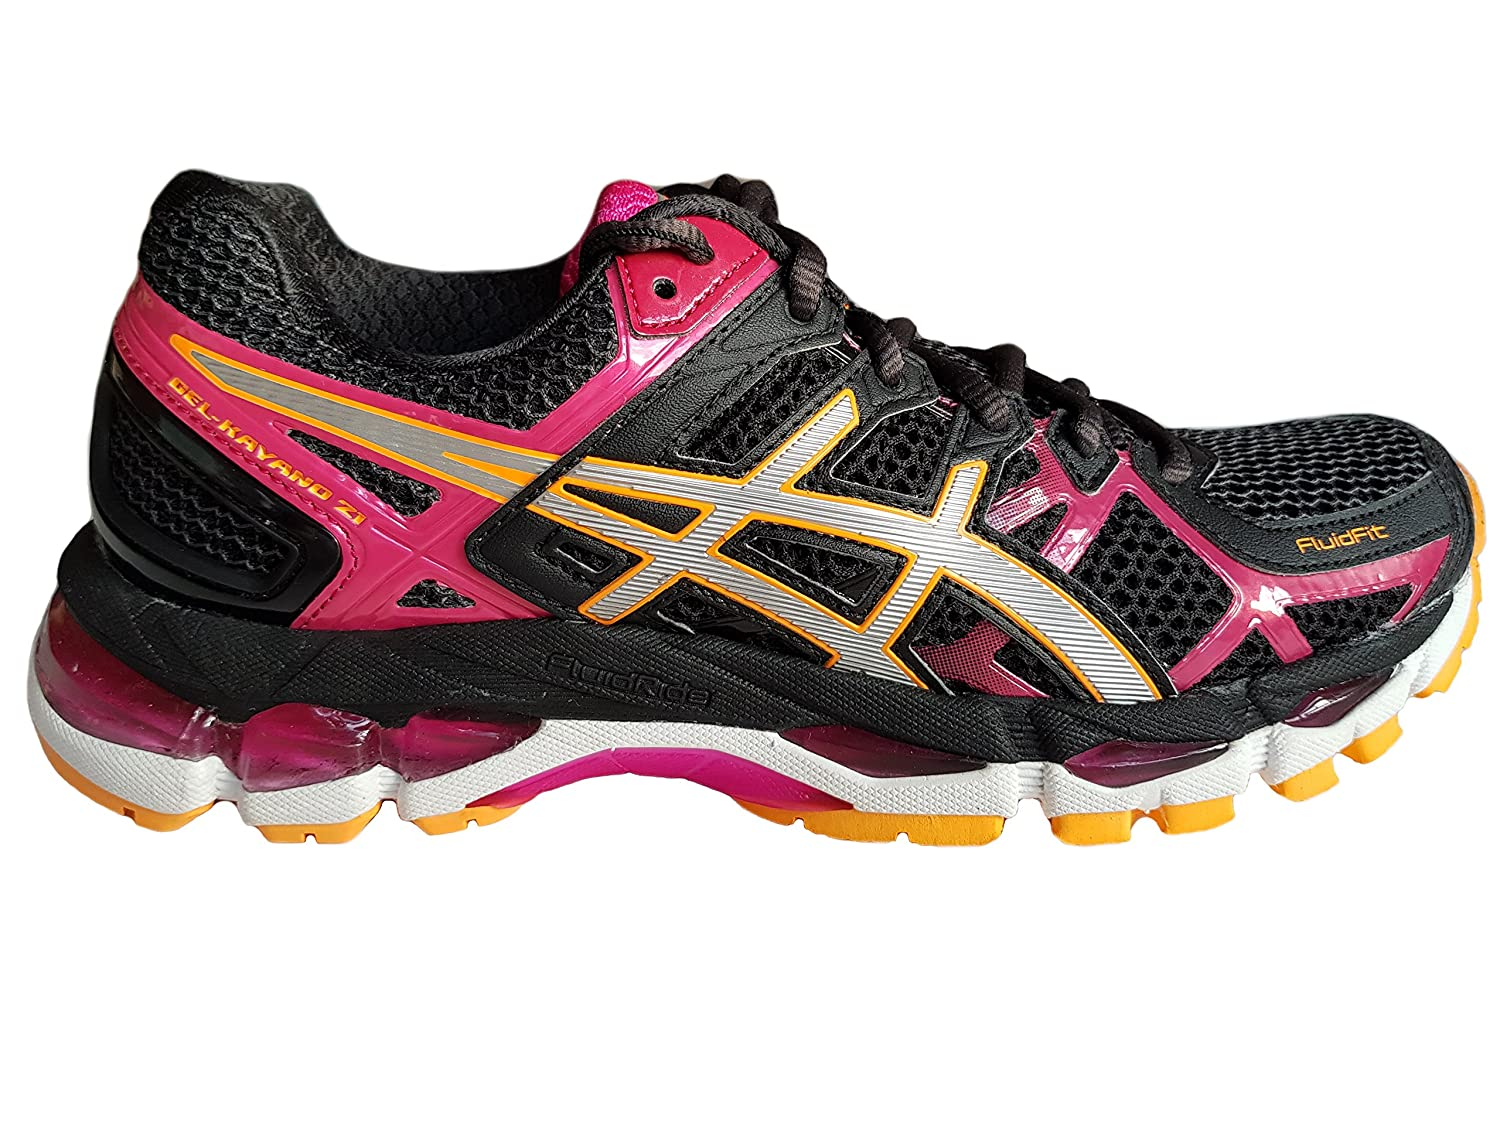 Asics Gel Kayano Womens Raspberry Shoes Running At The And